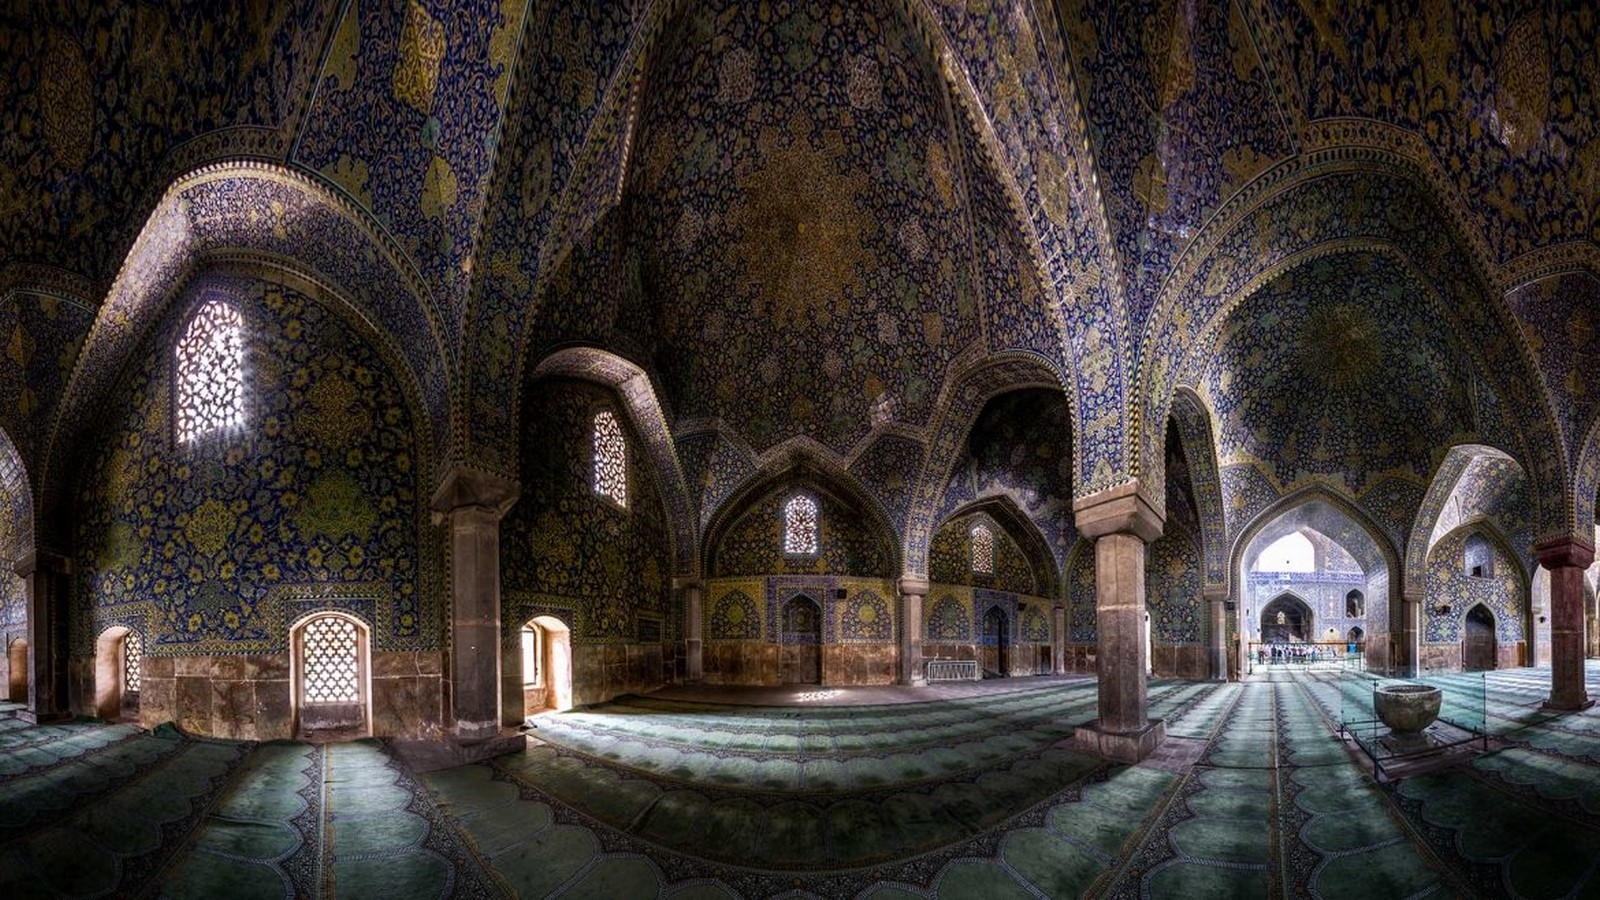 Masjed-e Jame, Iran: The oldest Friday mosque in Iran - Sheet4